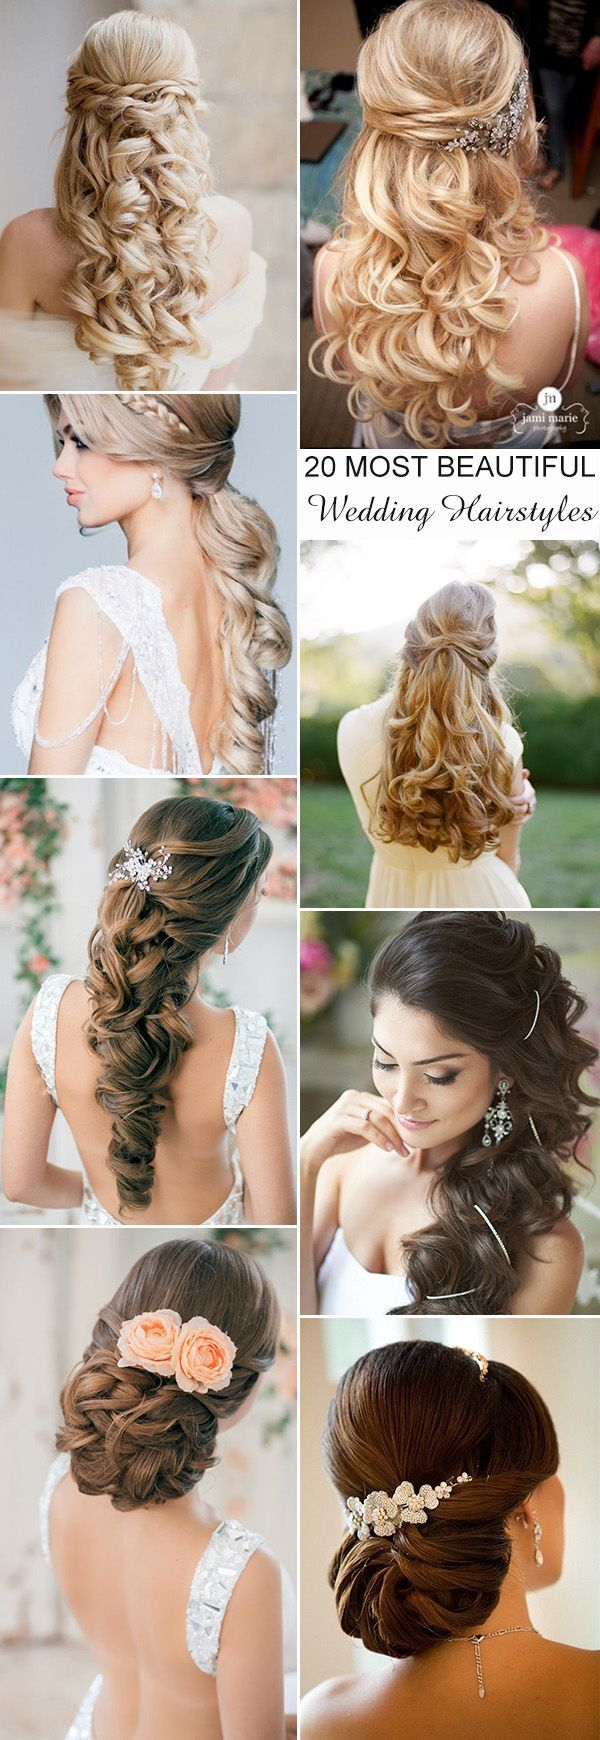 20 most beautiful and elegant wedding hairstyles for long hair | thebeautyspotqld.com.au